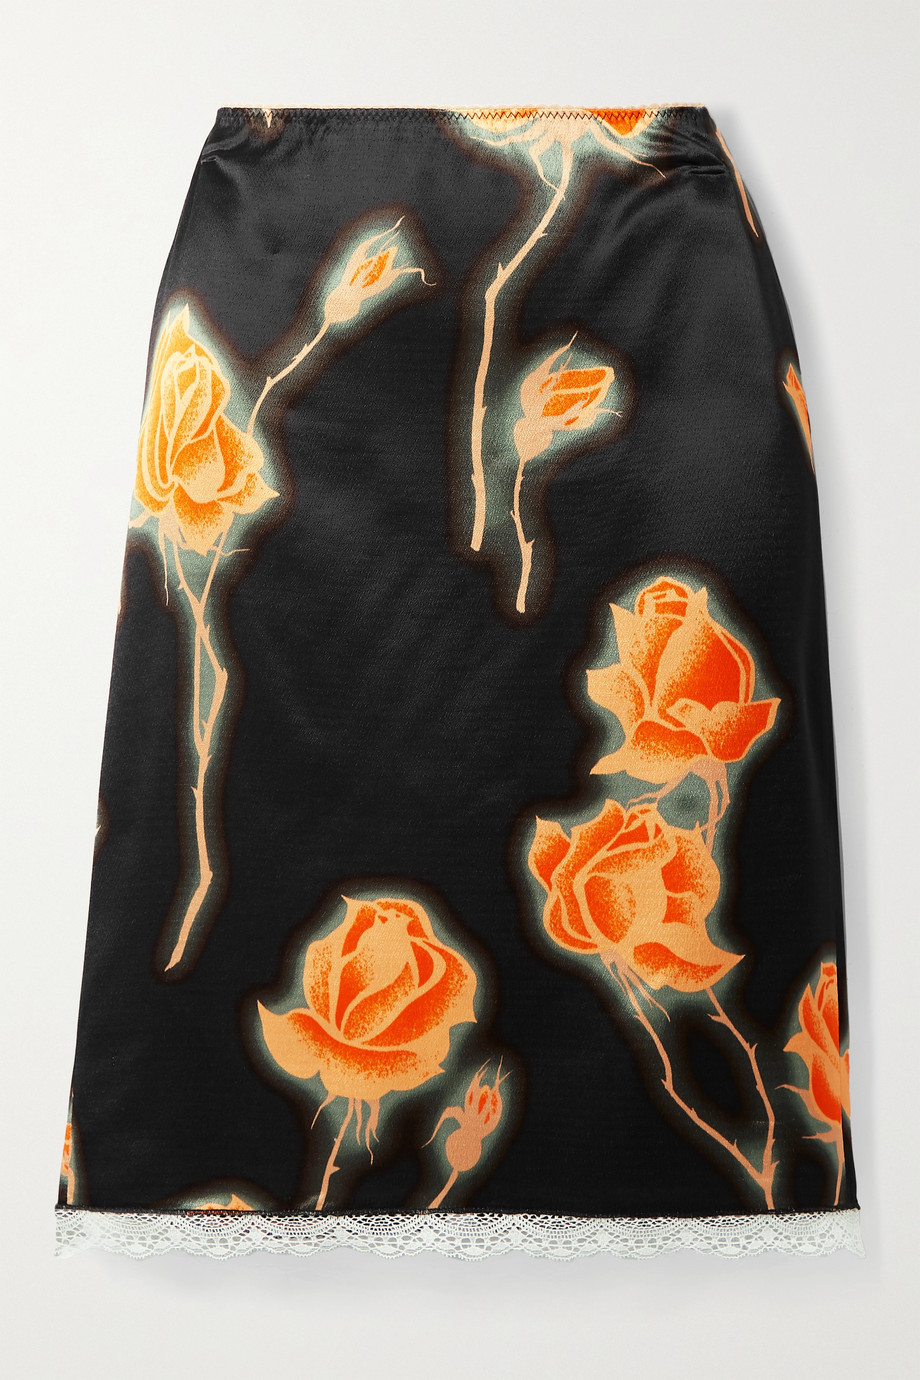 Meryll Rogge Lace-trimmed floral-print satin skirt